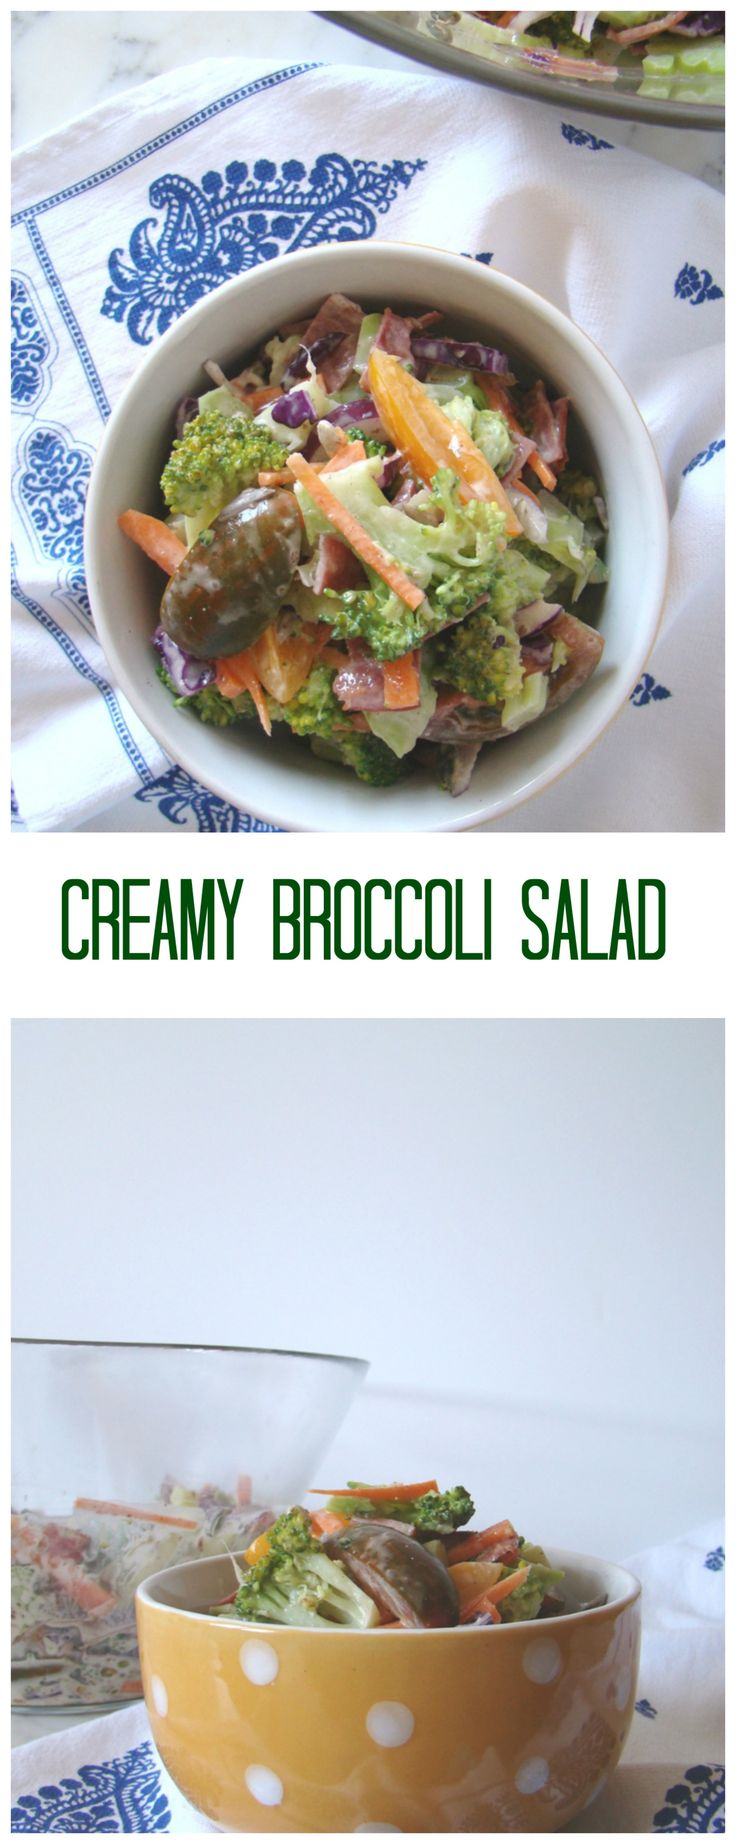 This Creamy Broccoli Salad has to be the perfect lunch or dinner idea. It's creamy, delicious and super easy to make.YUM!